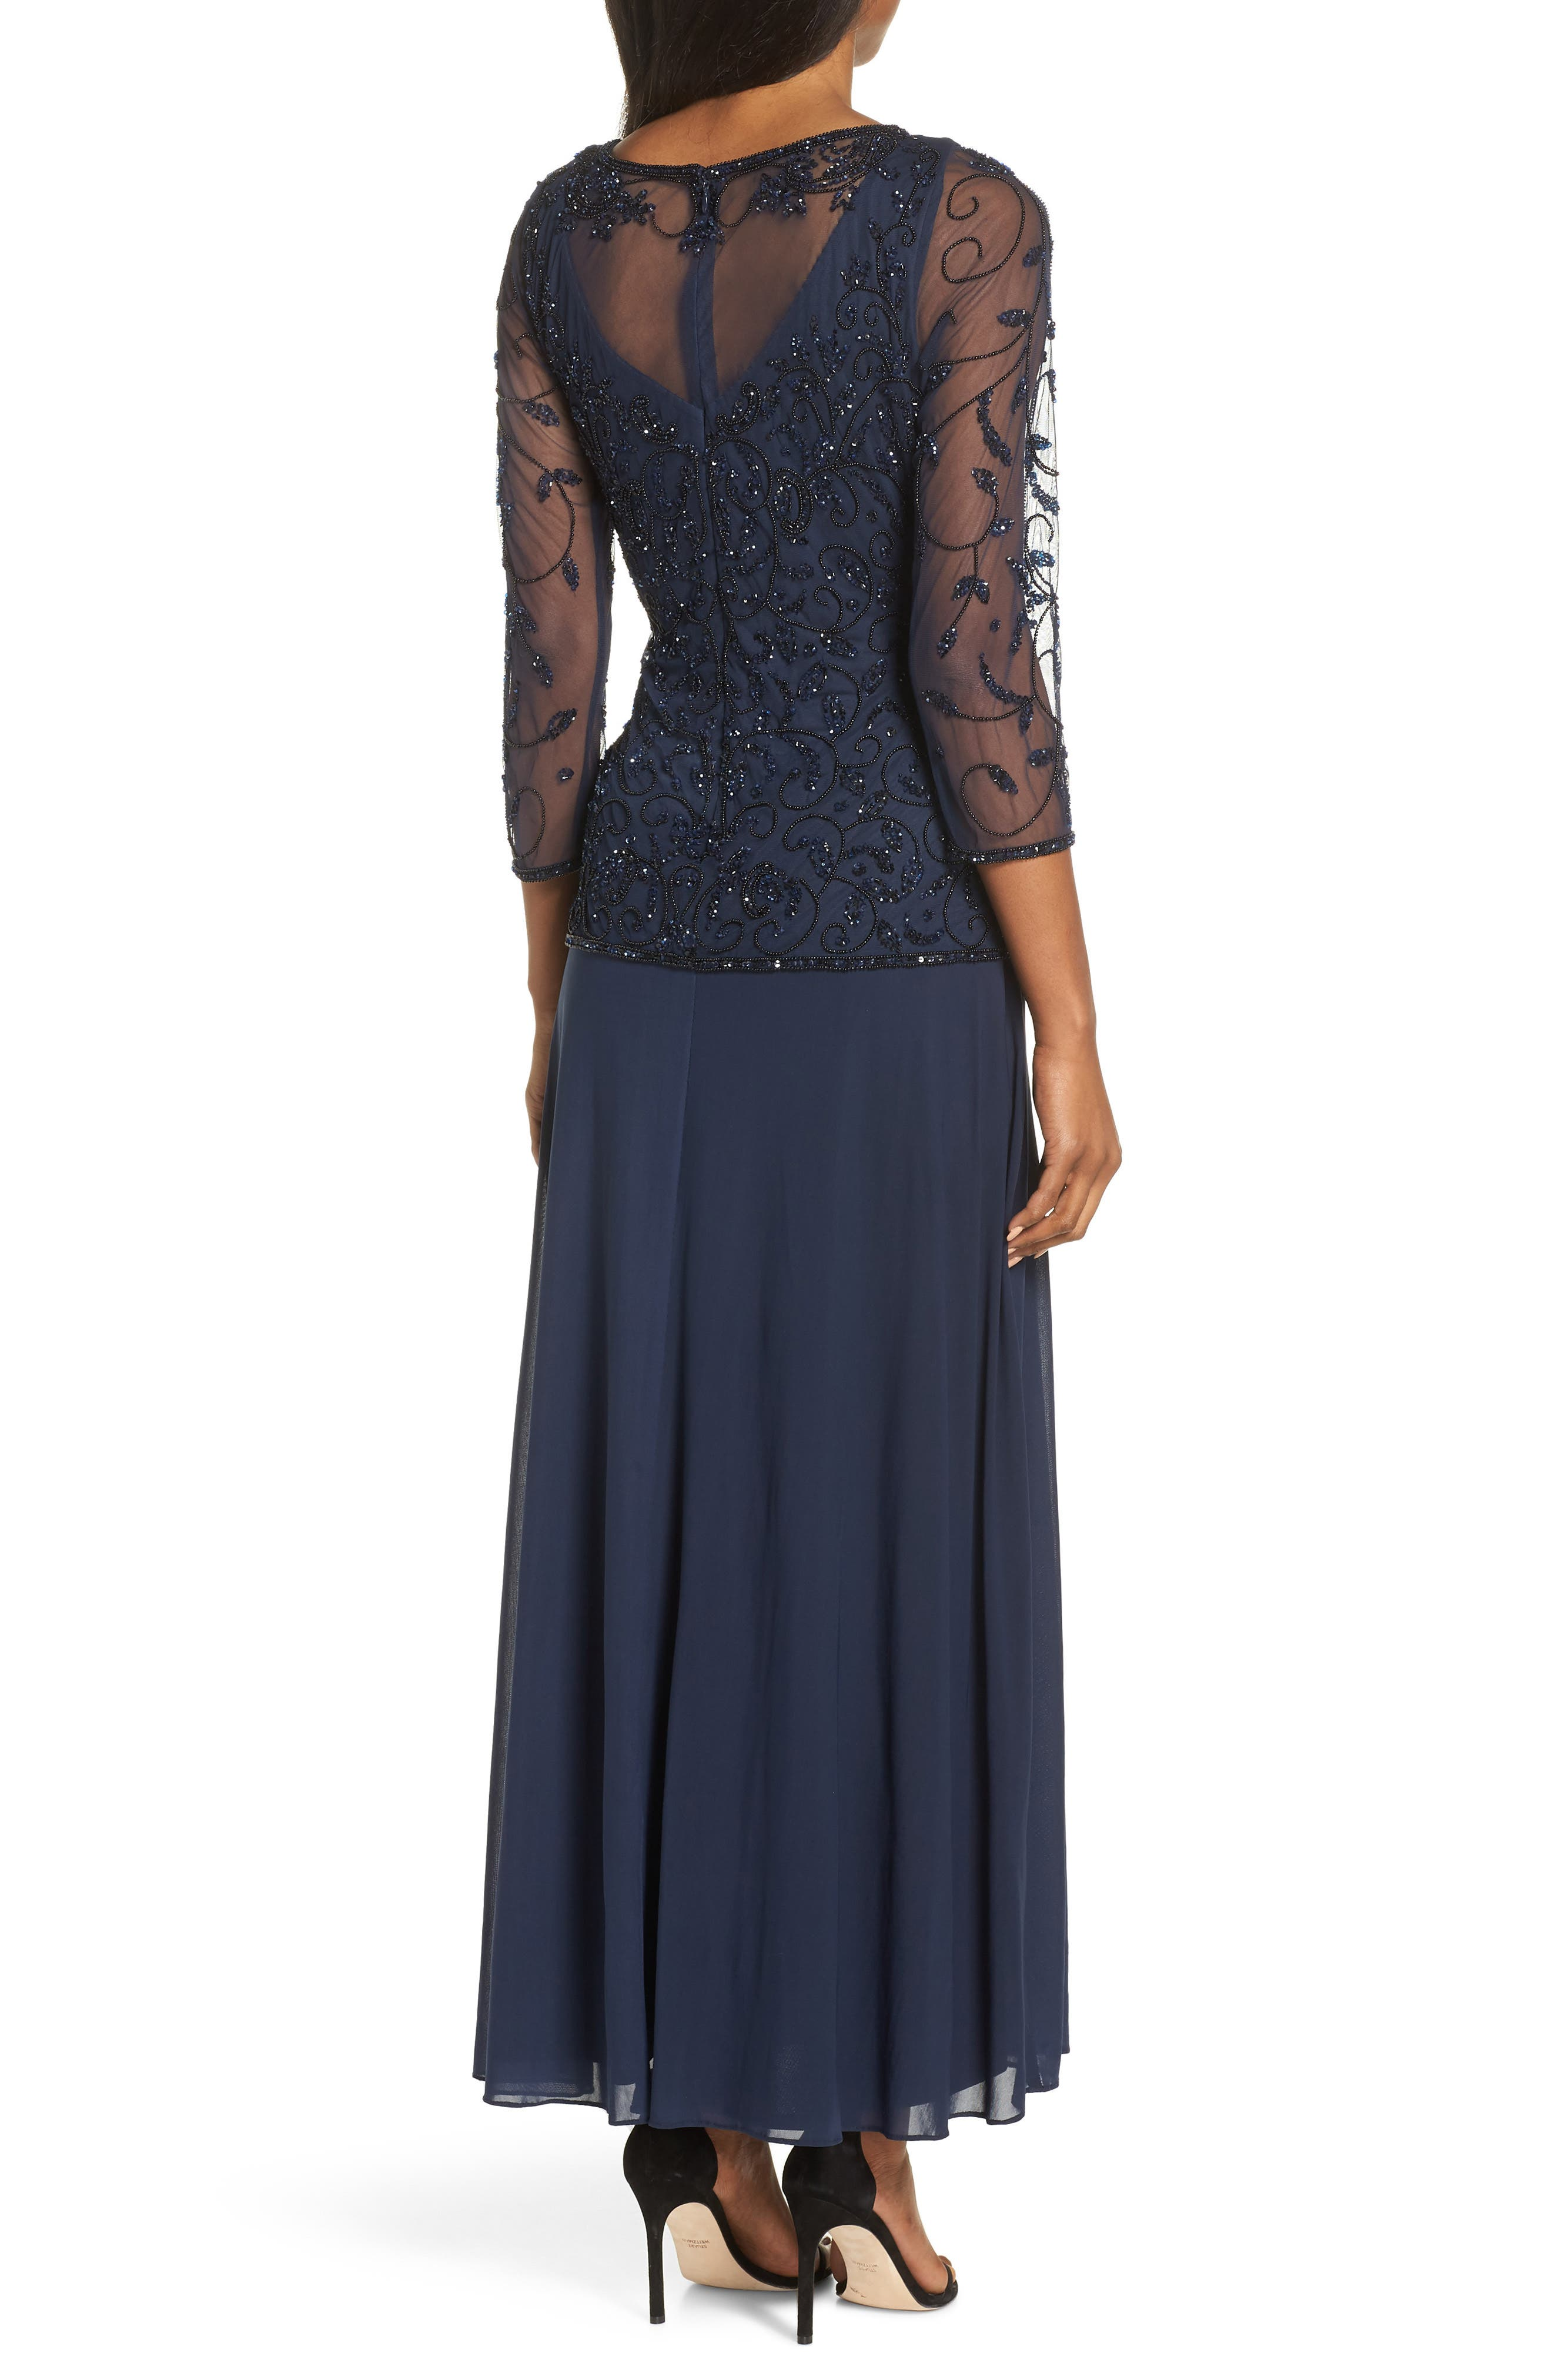 PISARRO NIGHTS, Beaded Mesh Mock Two-Piece Gown, Alternate thumbnail 2, color, NAVY/ BLACK